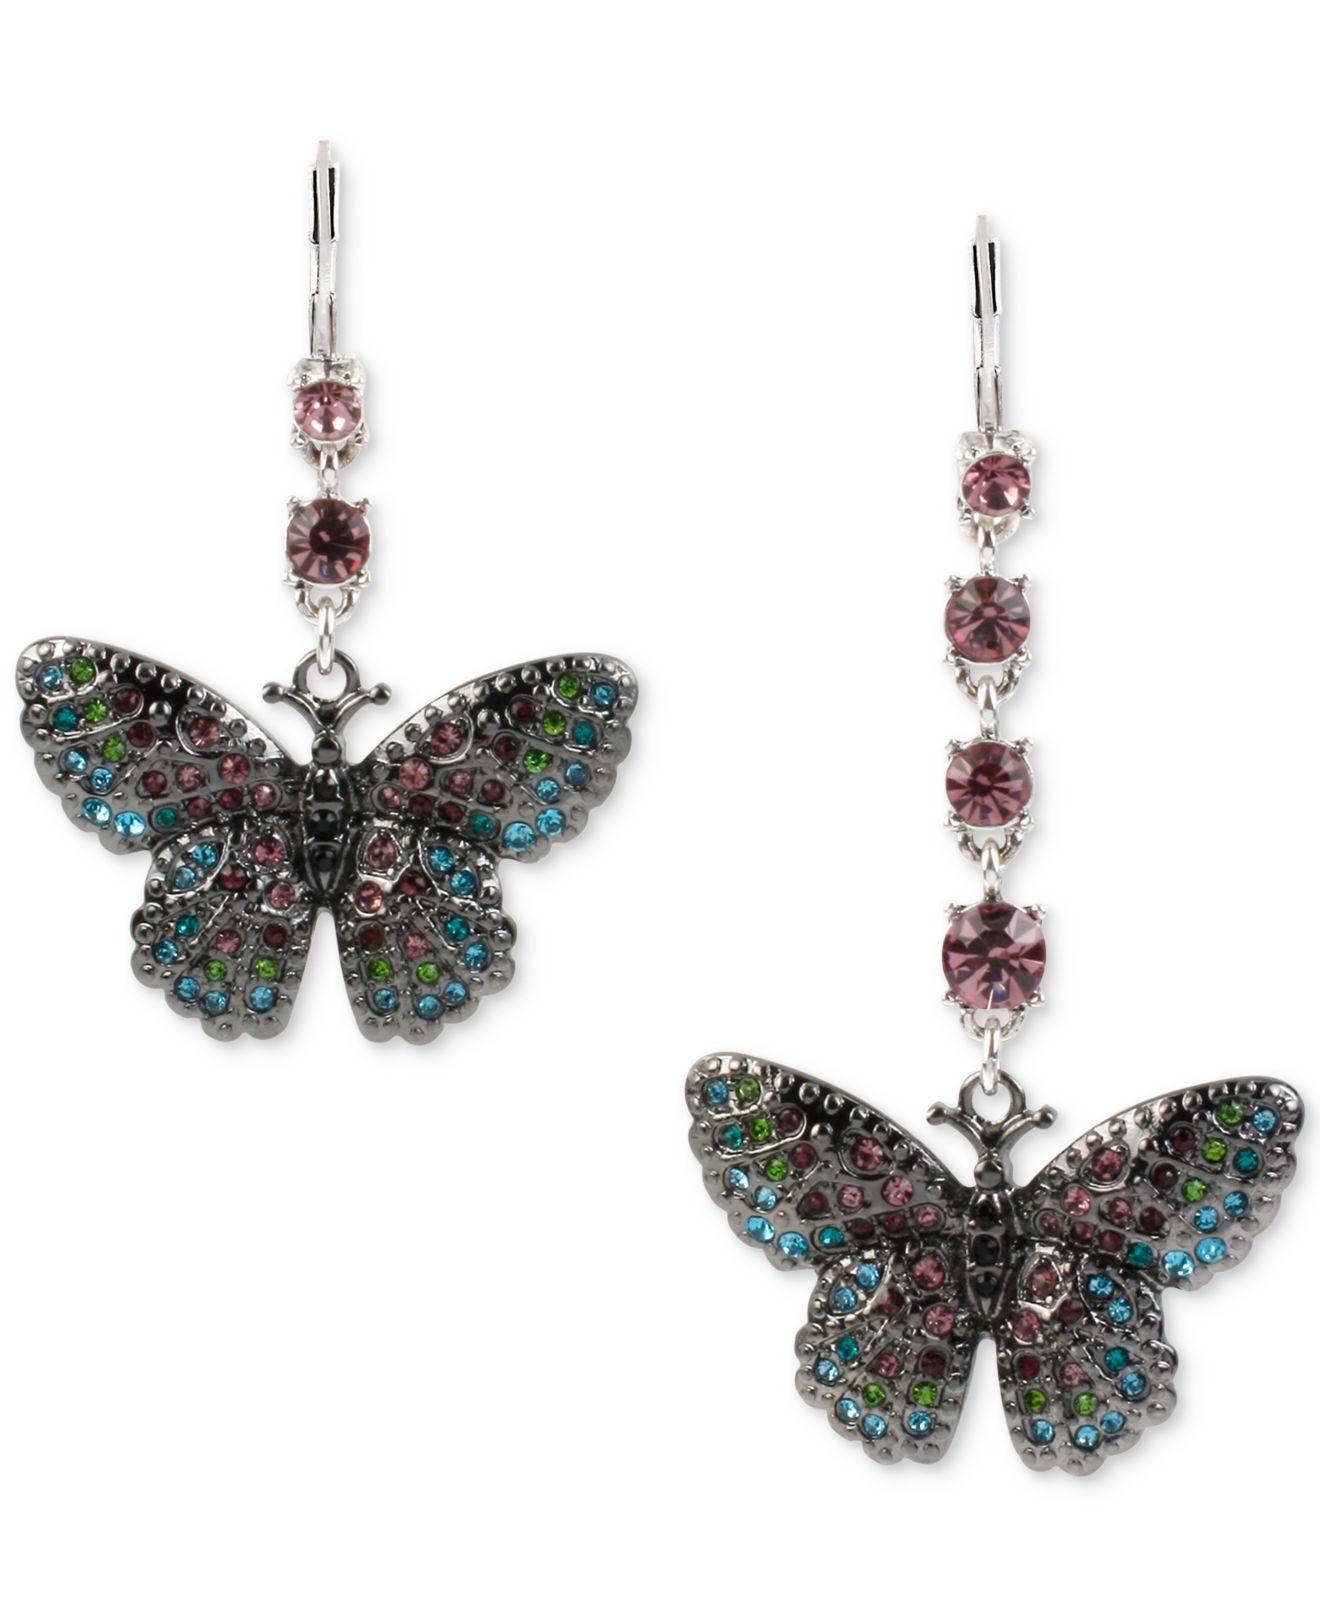 Betsey Johnson Fish Earrings Collection